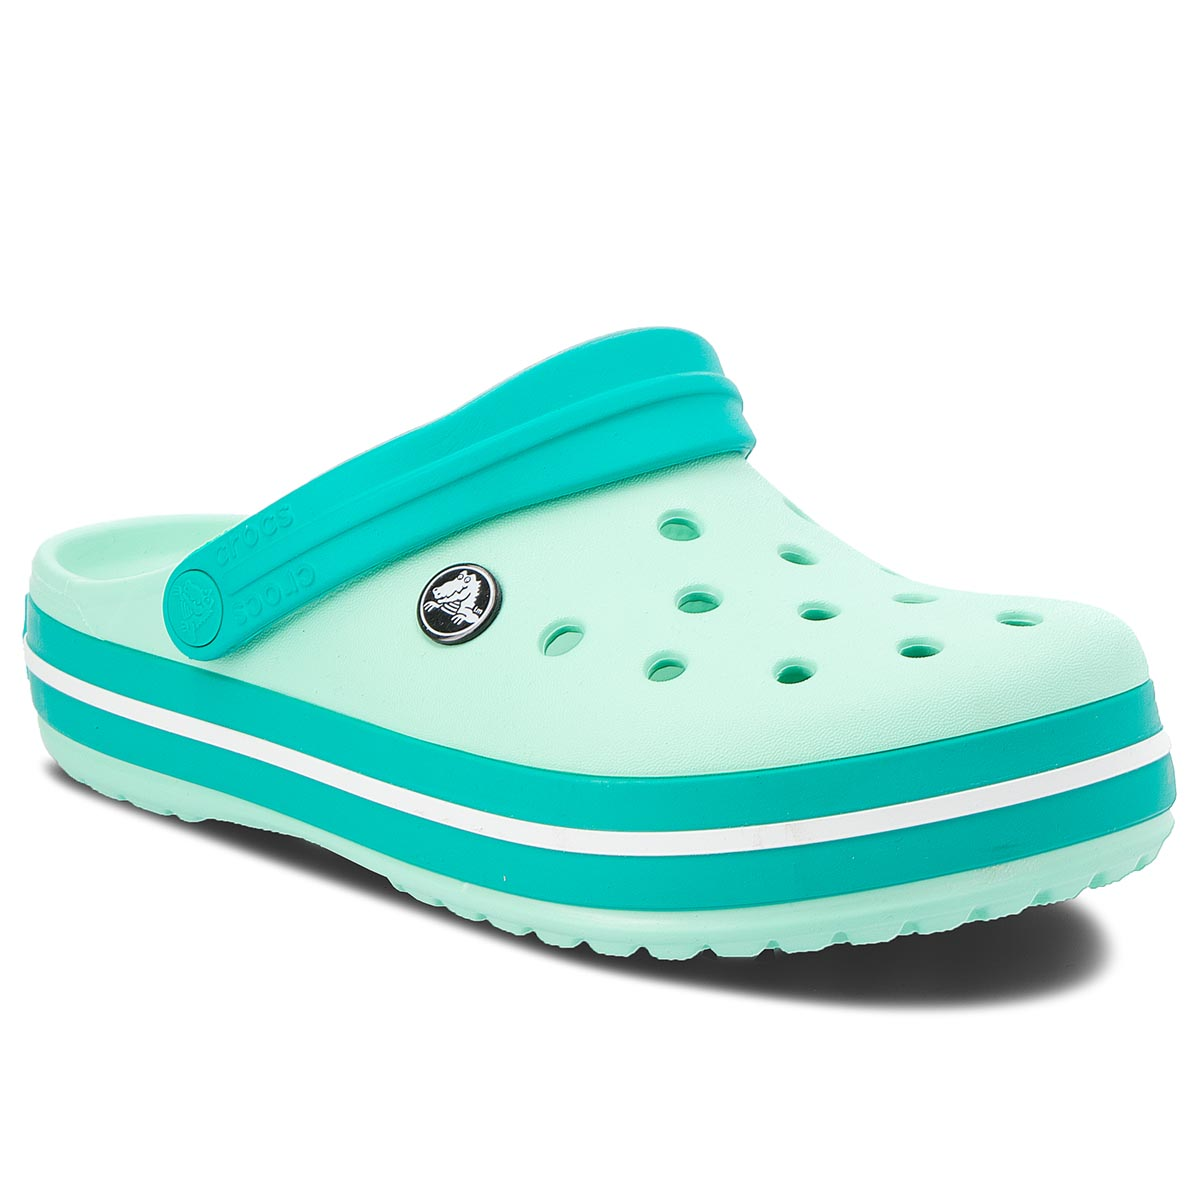 Klapki CROCS - Crocband 11016 New Mint/Tropical Teal